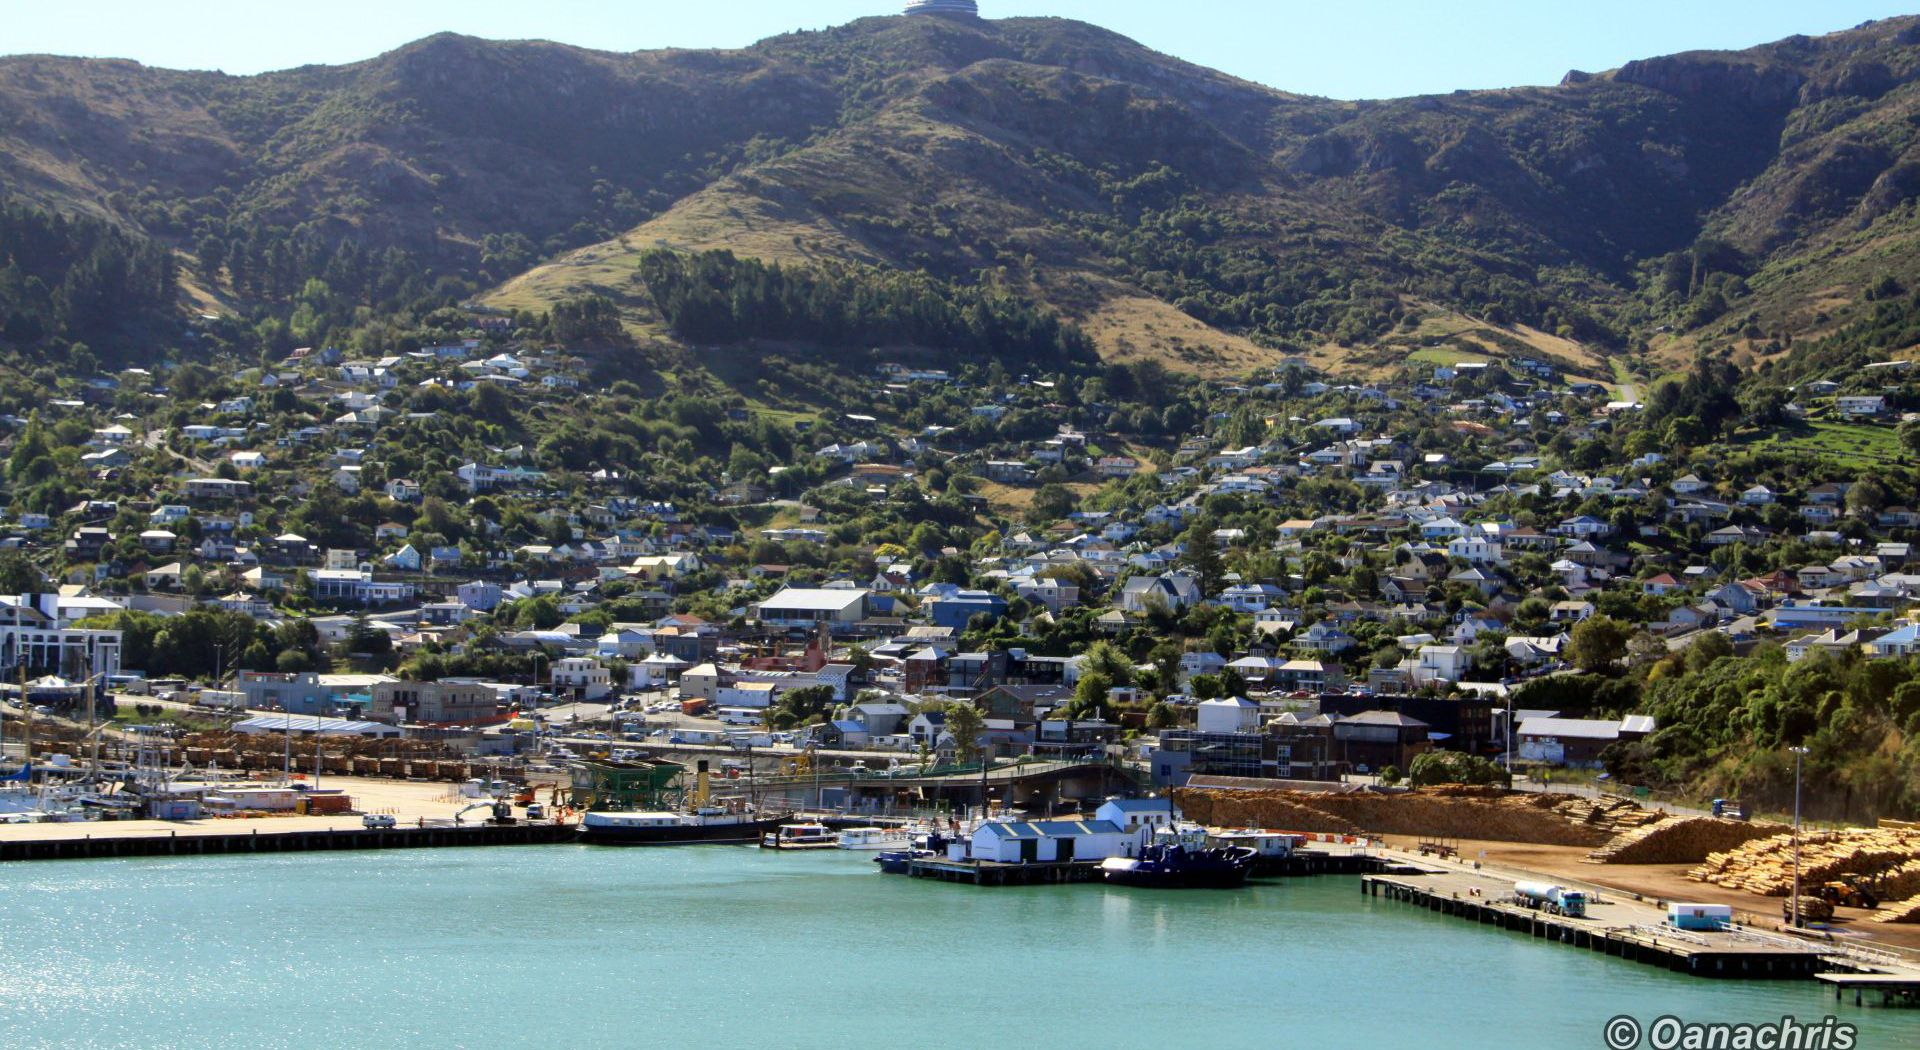 Going ashore in Lyttelton